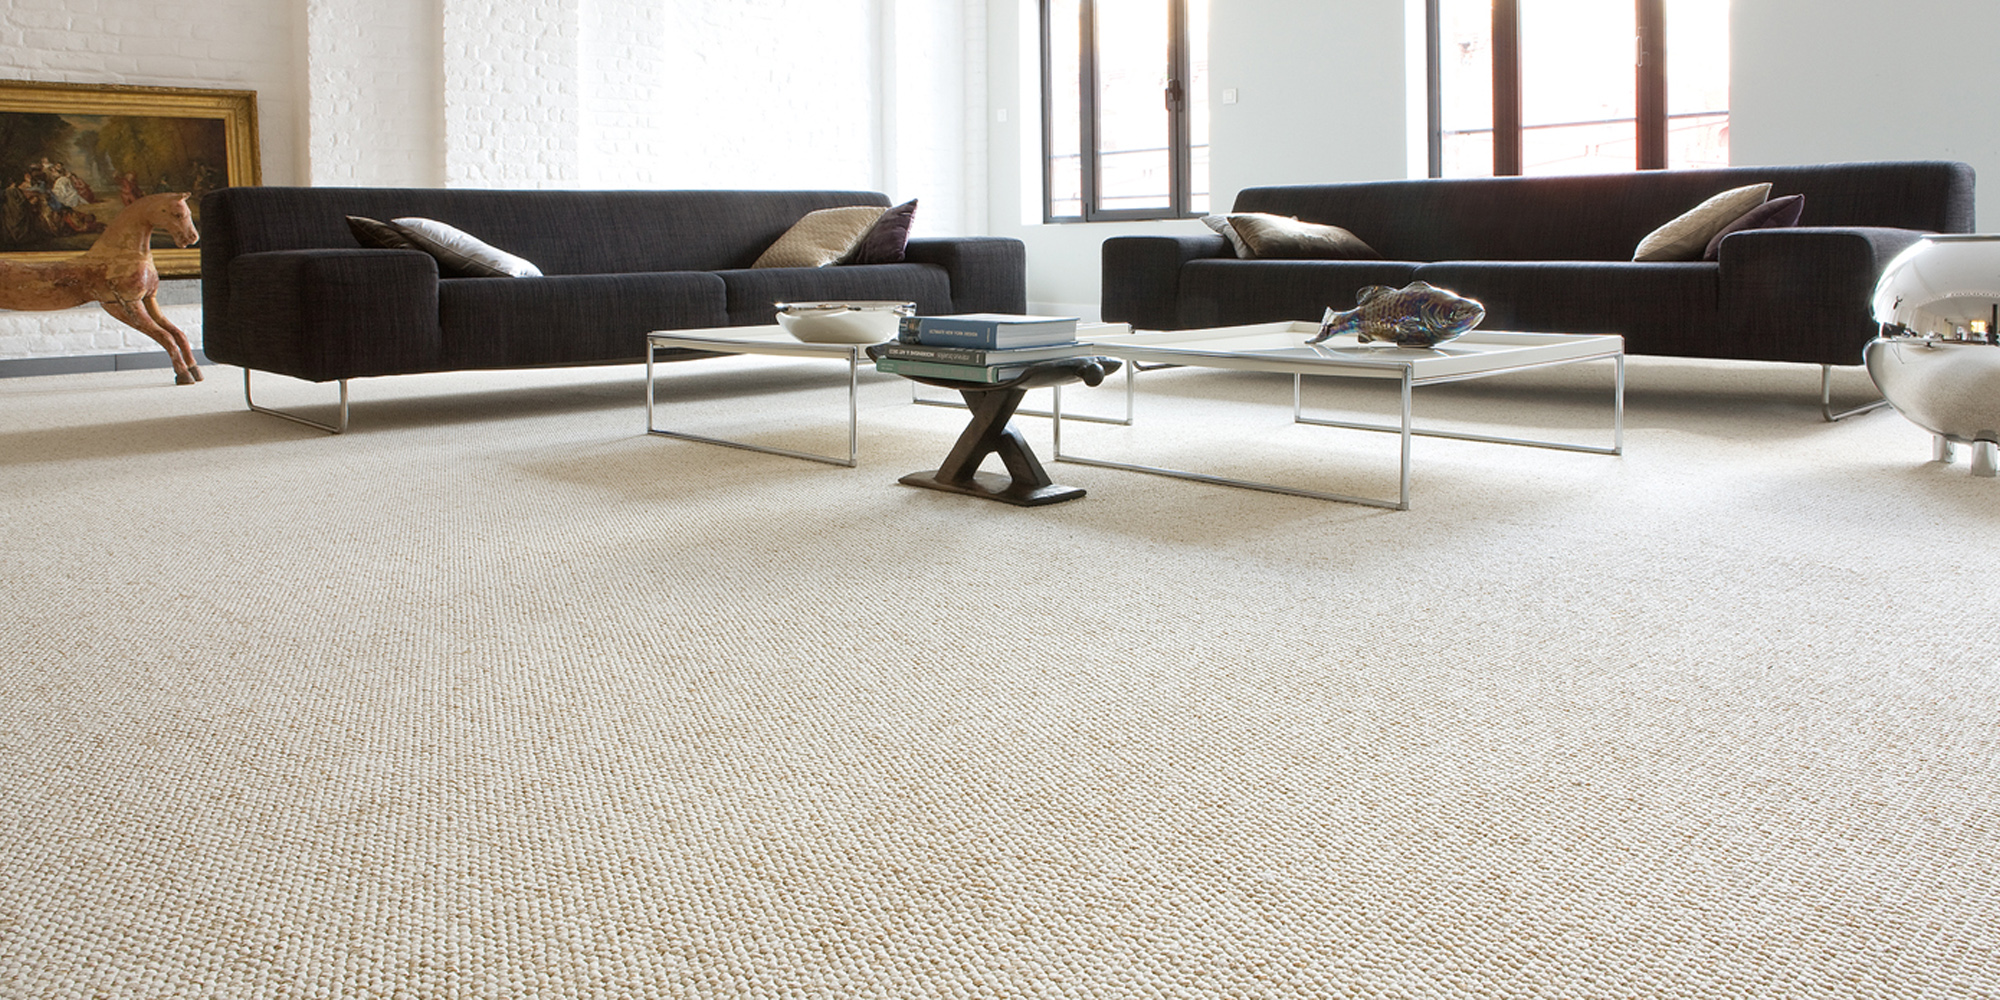 Image result for High Quality Carpets